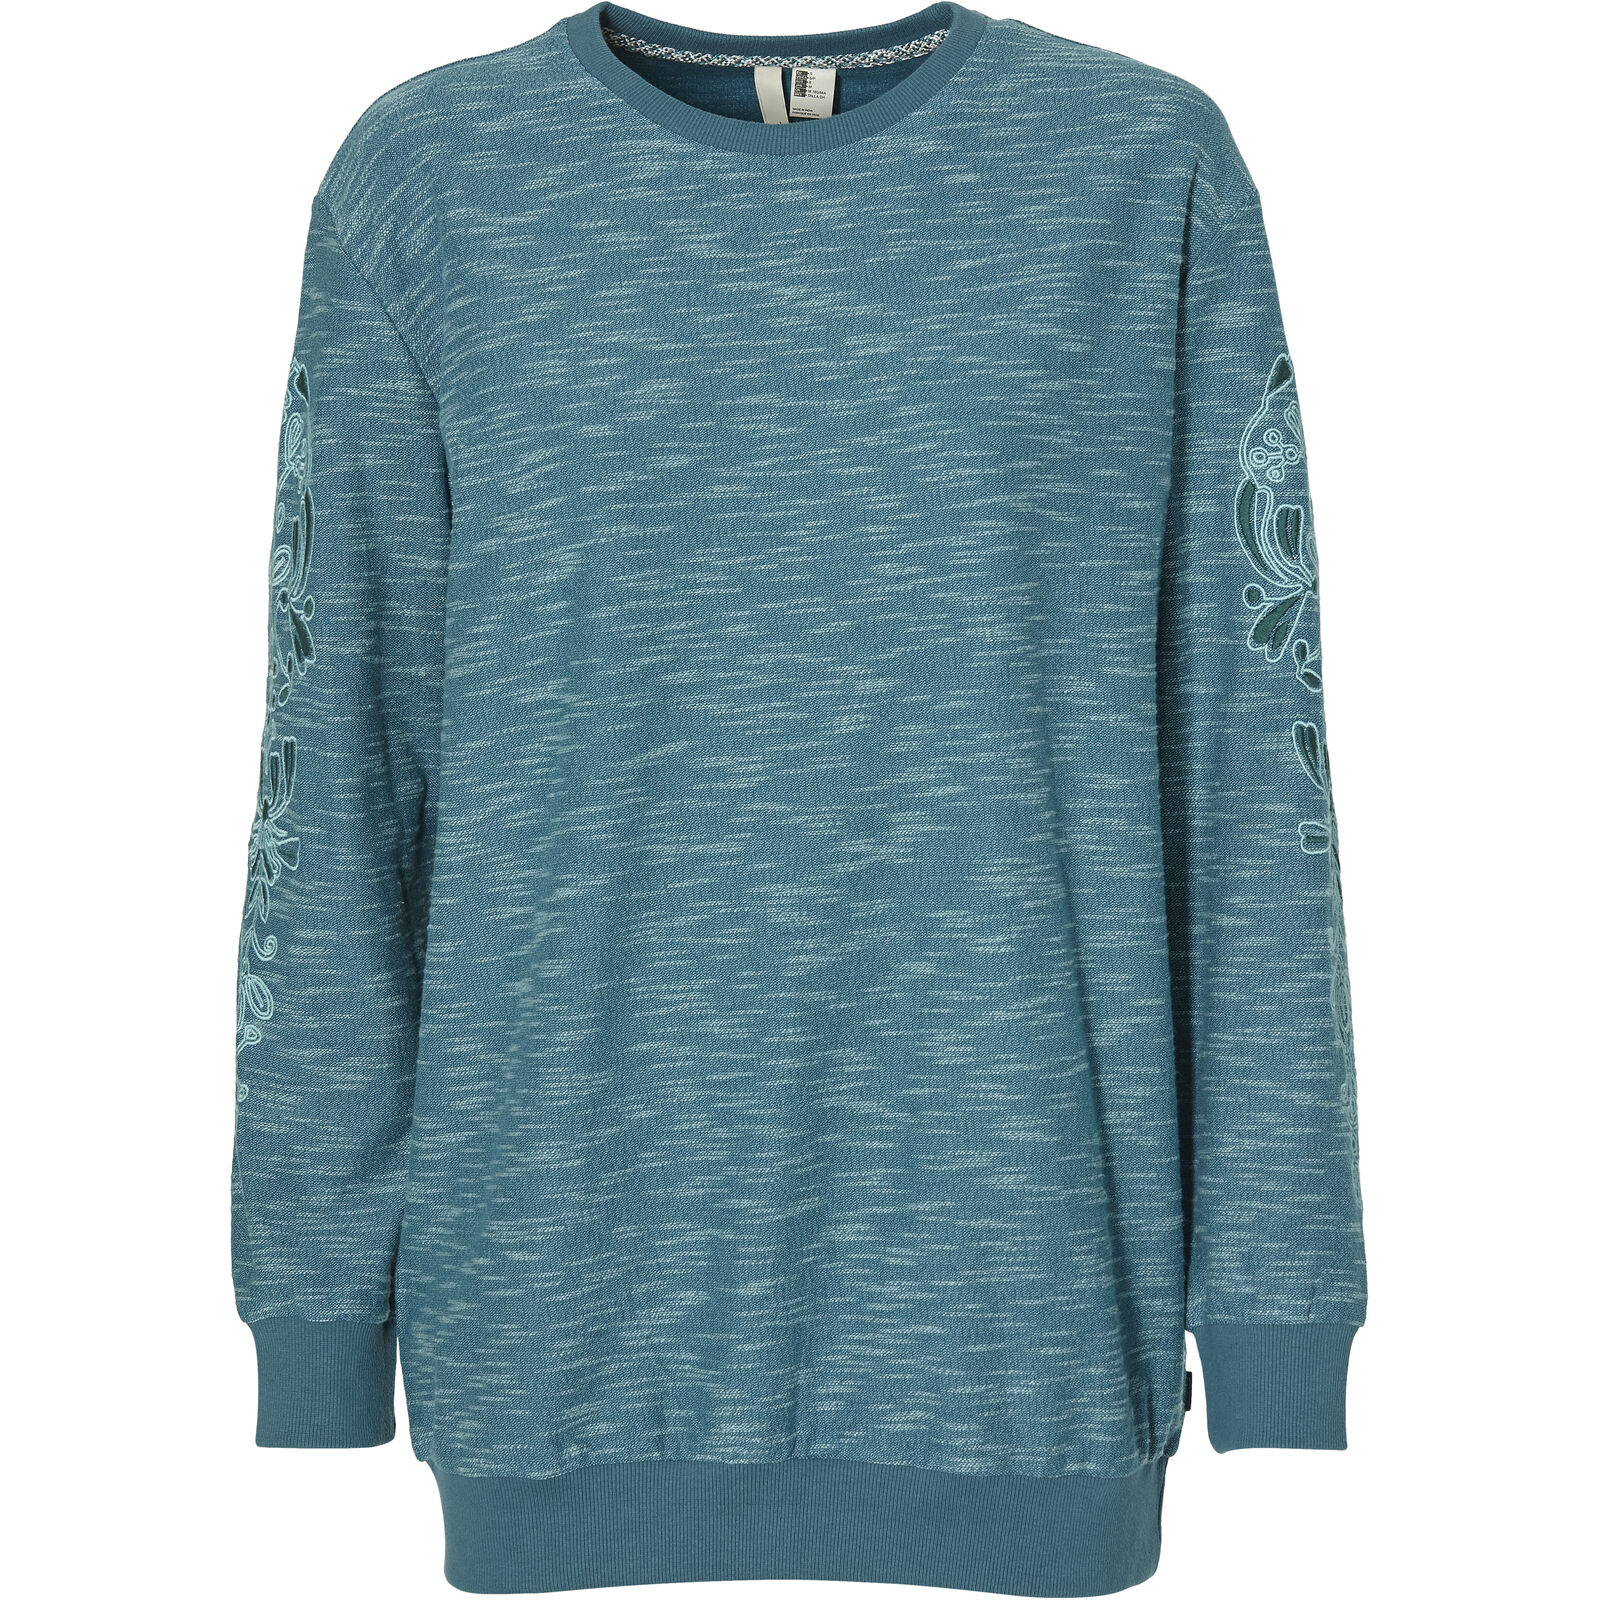 O'Neill Sweatshirt Sweater Sugar Pine Print Crew Sweat blue meliert